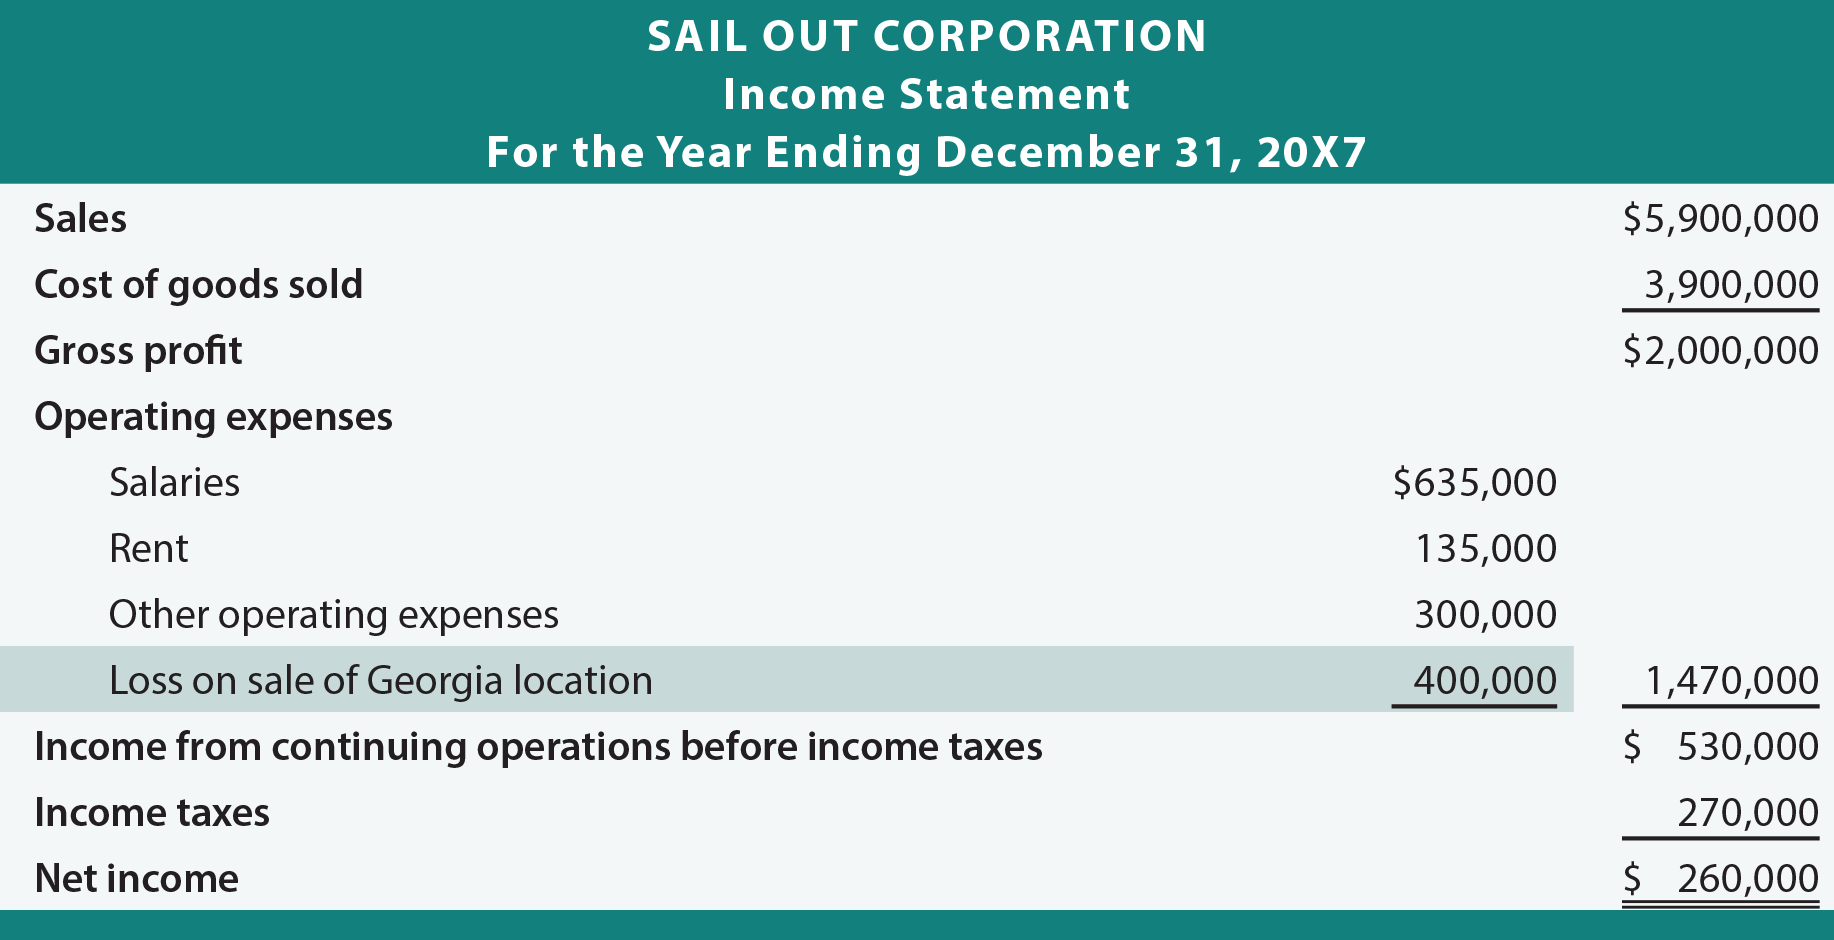 Sail Out Income Statement